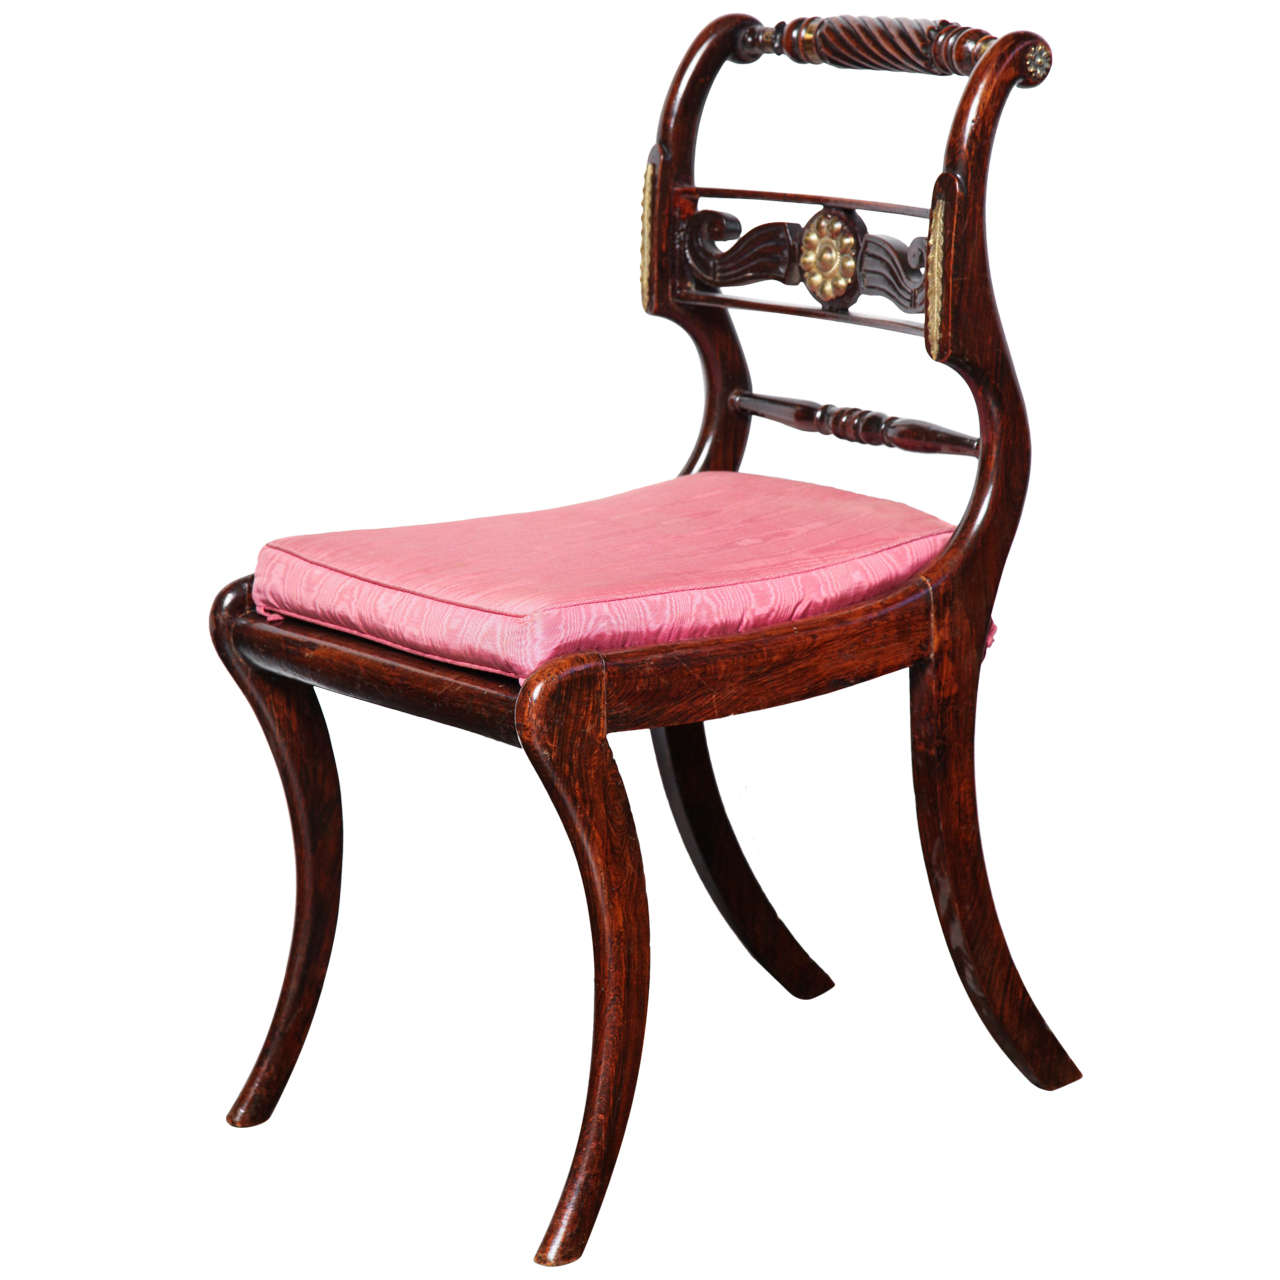 Home Decor Antiques 19th Century English Regency Chair At 1stdibs